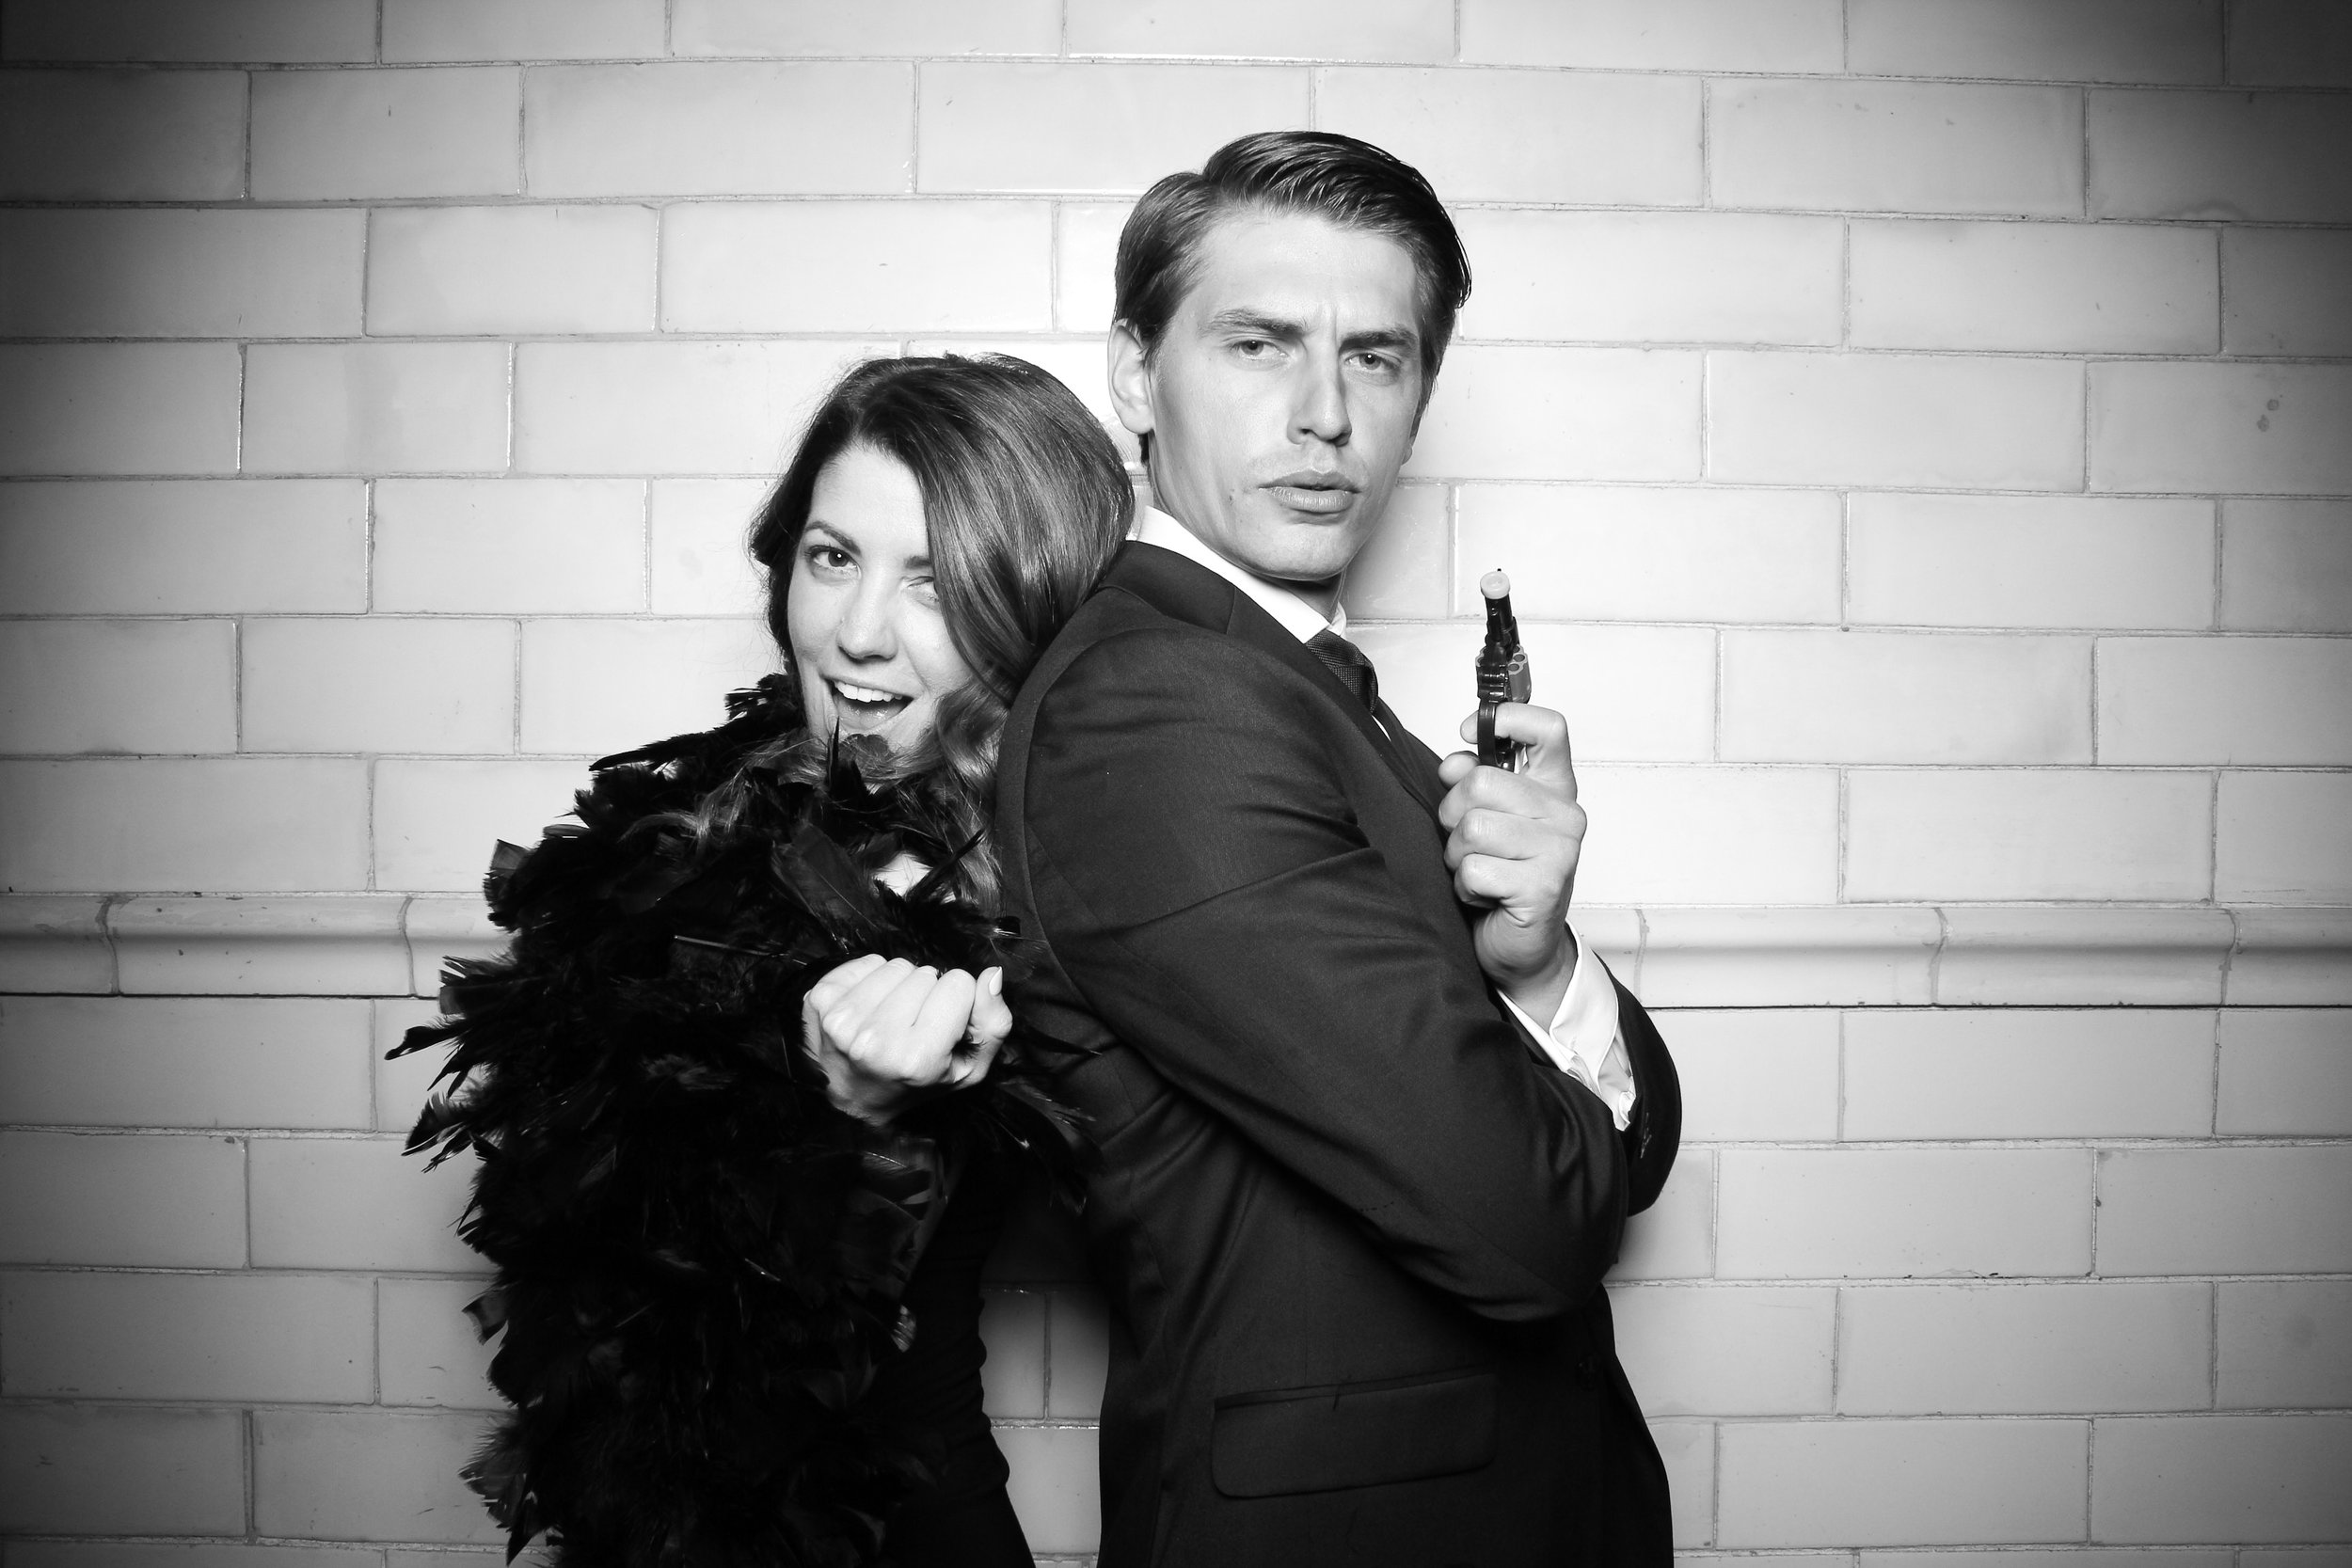 Firehouse_Chicago_Edgewater_Wedding_Reception_Photo_Booth_02.jpg